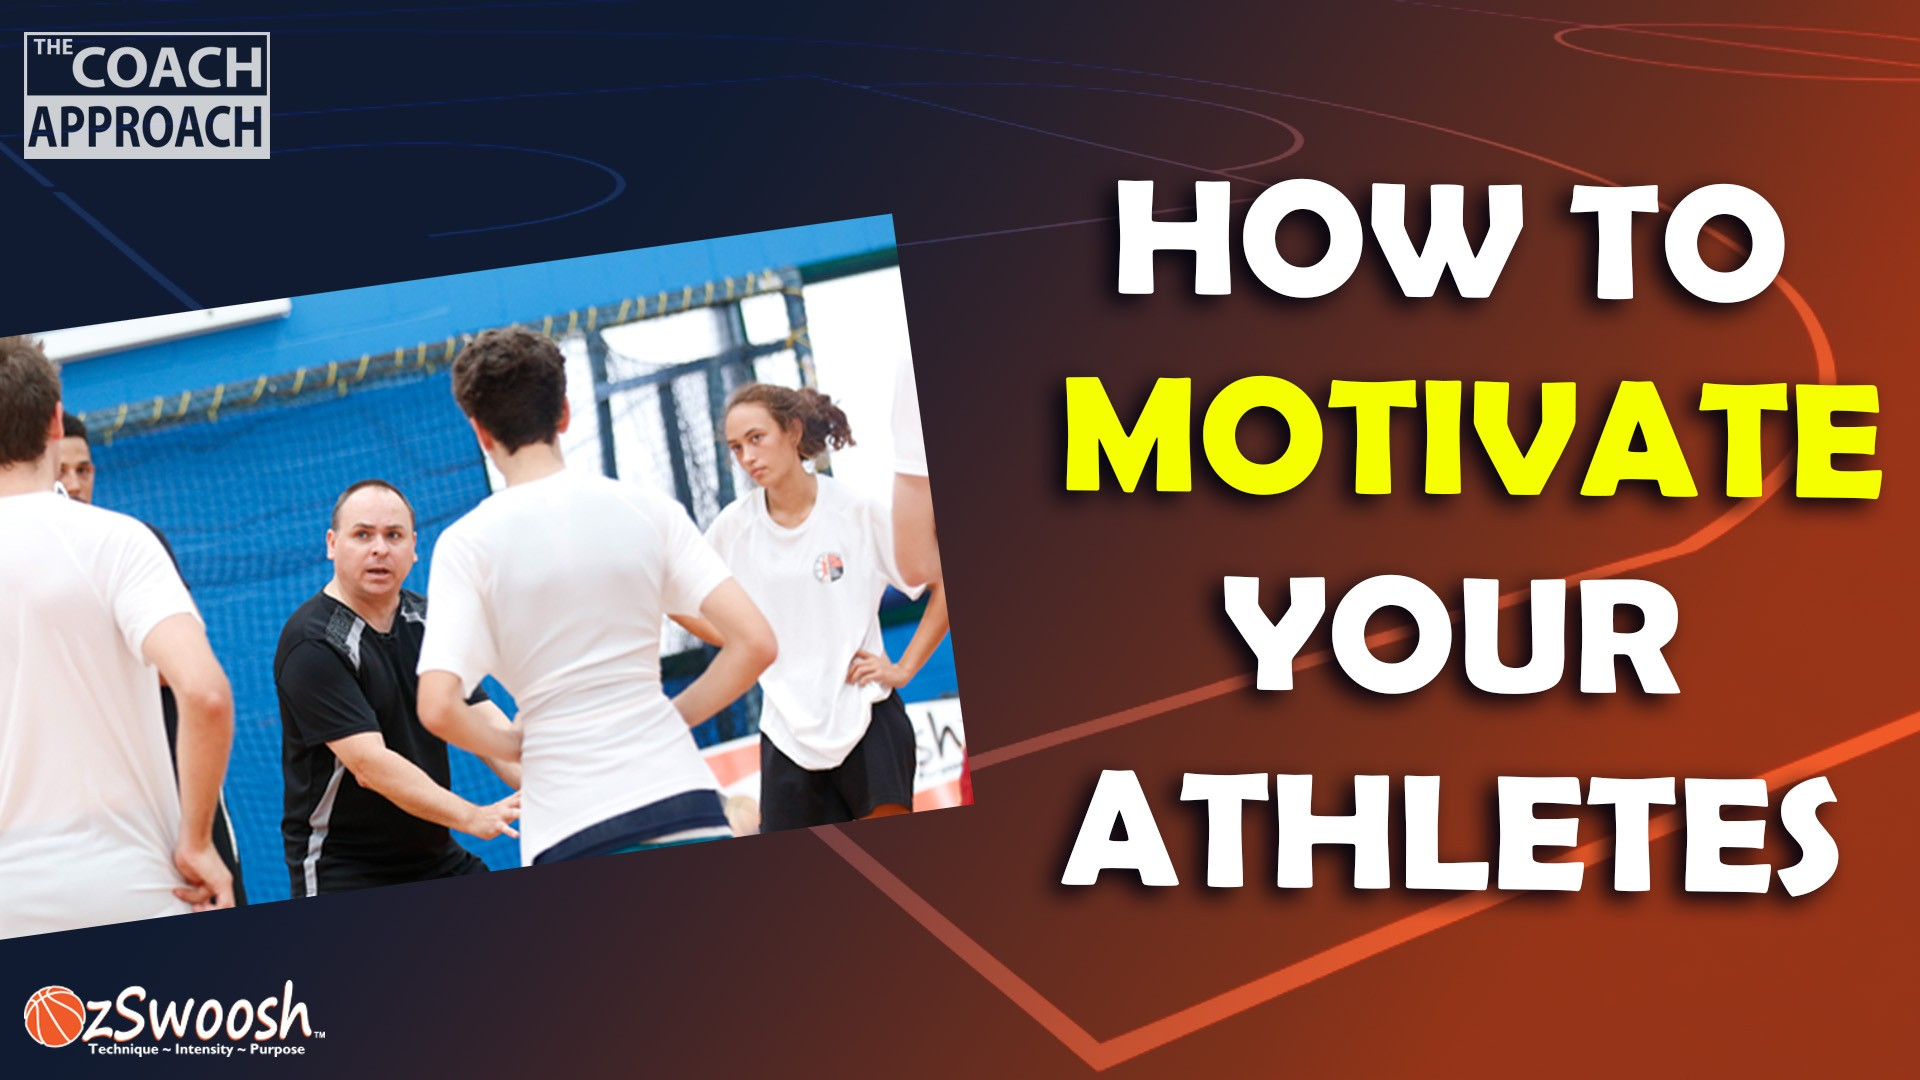 Motivating Athletes for beginner basketball coaches - The Coach Approach